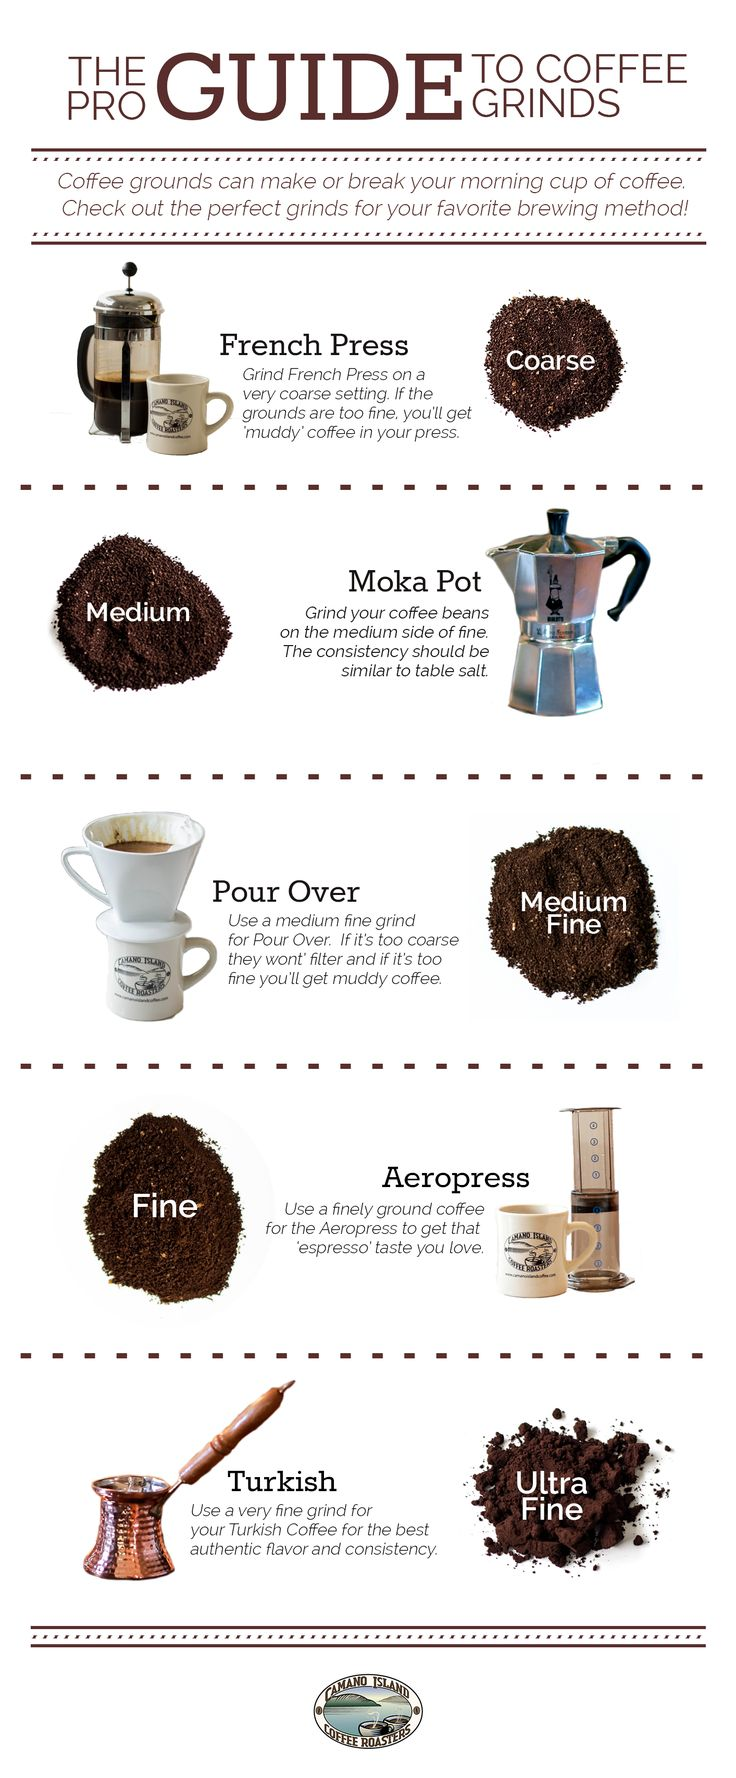 The Pro Guide to Coffee Grounds - knowyourgrinder.com #coffee #grinders…